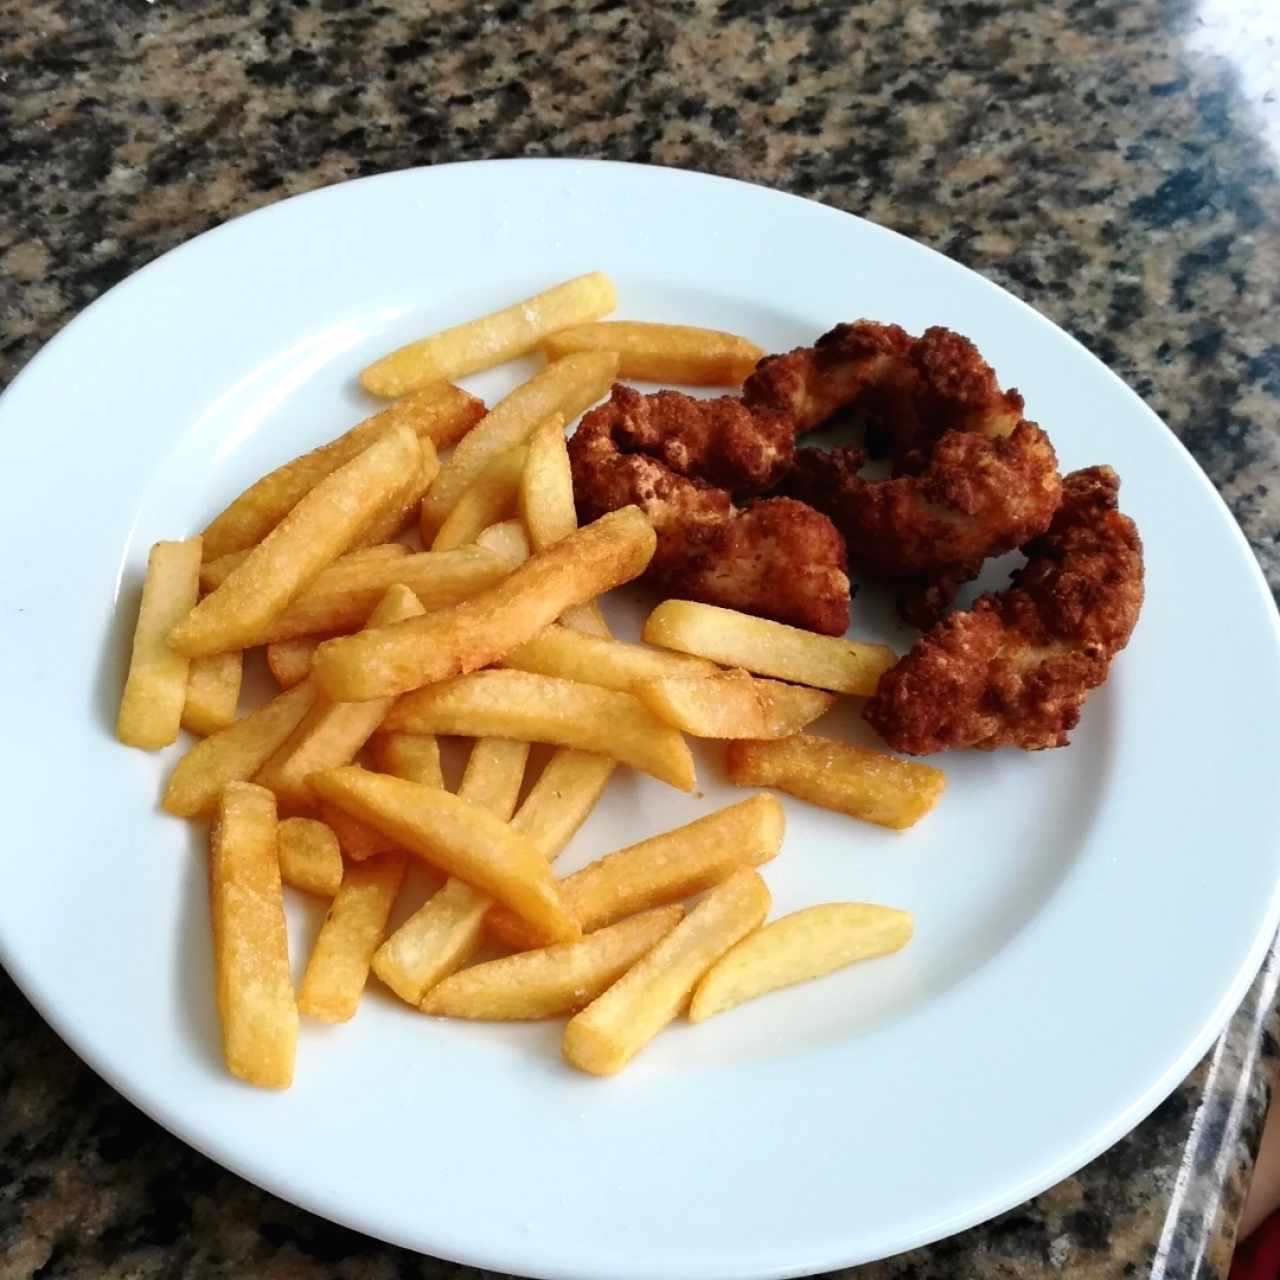 chicken tenders and fries - pedido especial